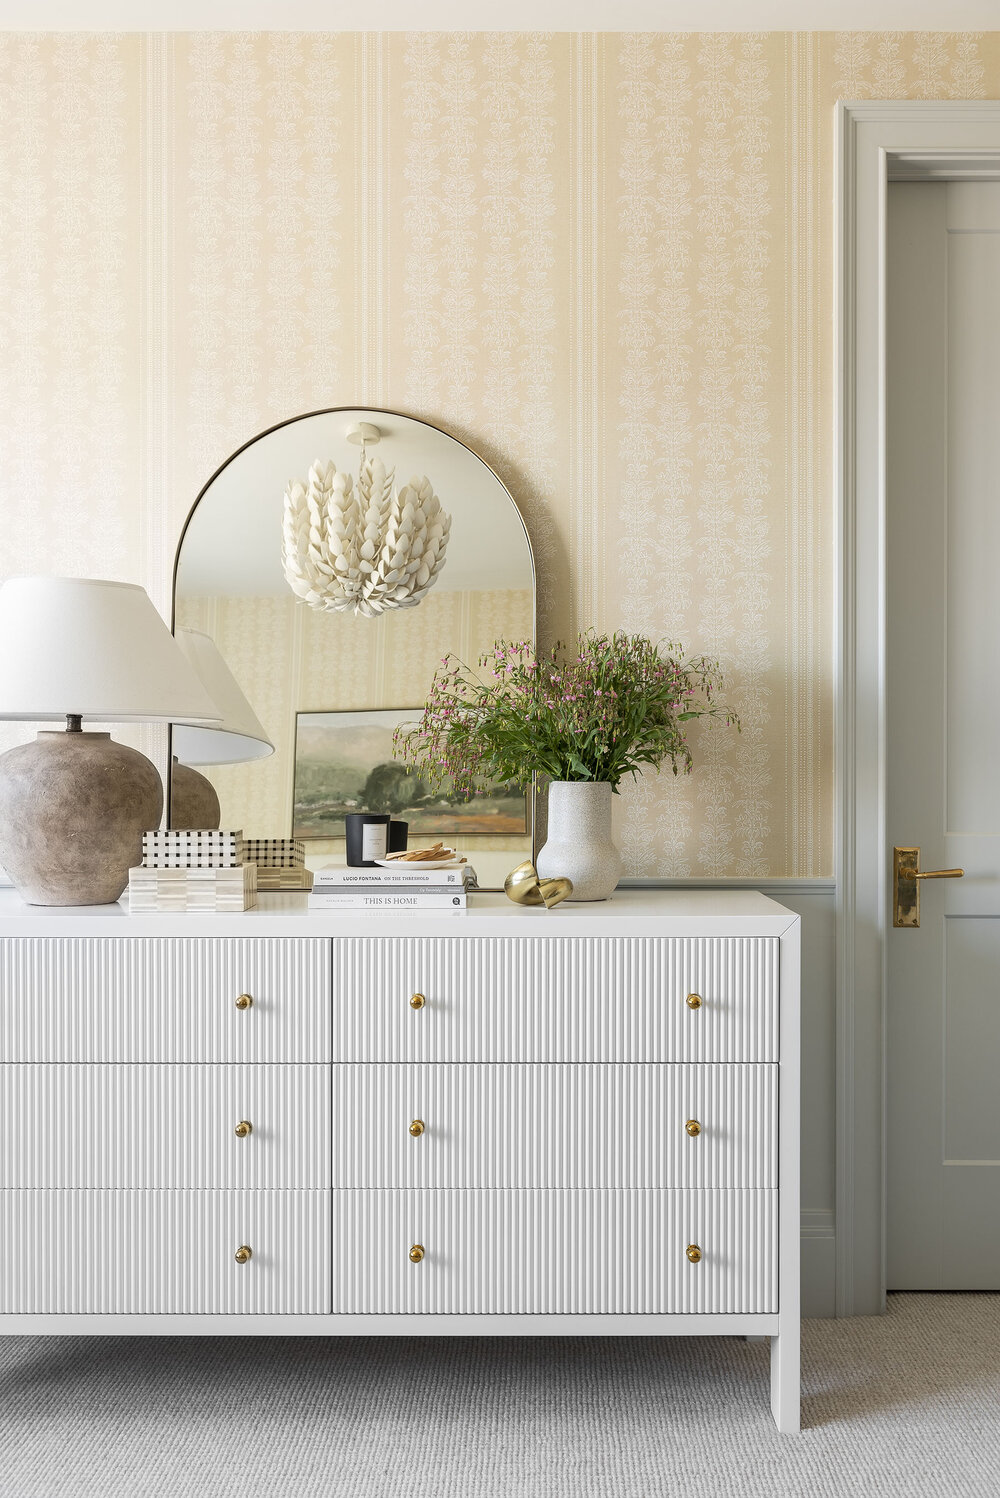 How to Choose the Right Mirror For Your Space